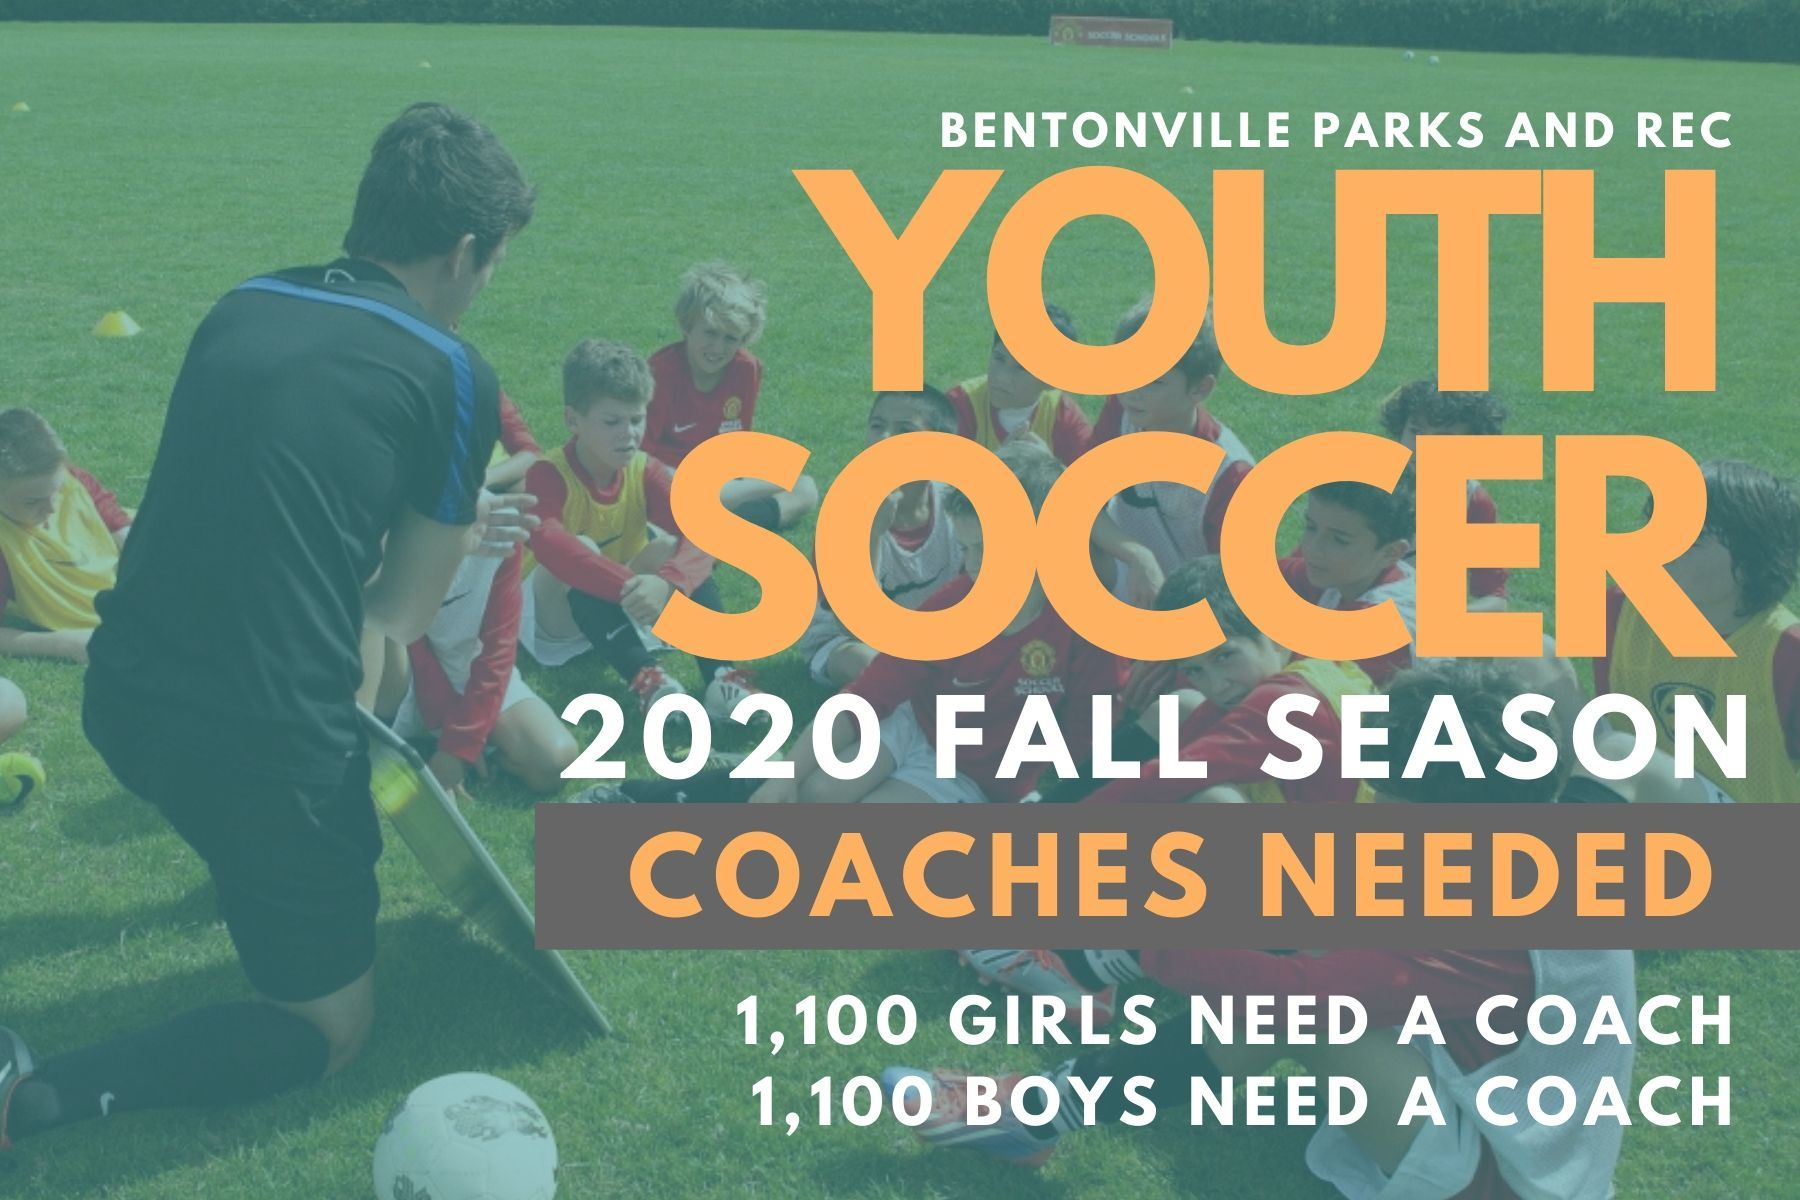 FALL 2020 Youth Soccer Coaches Needed